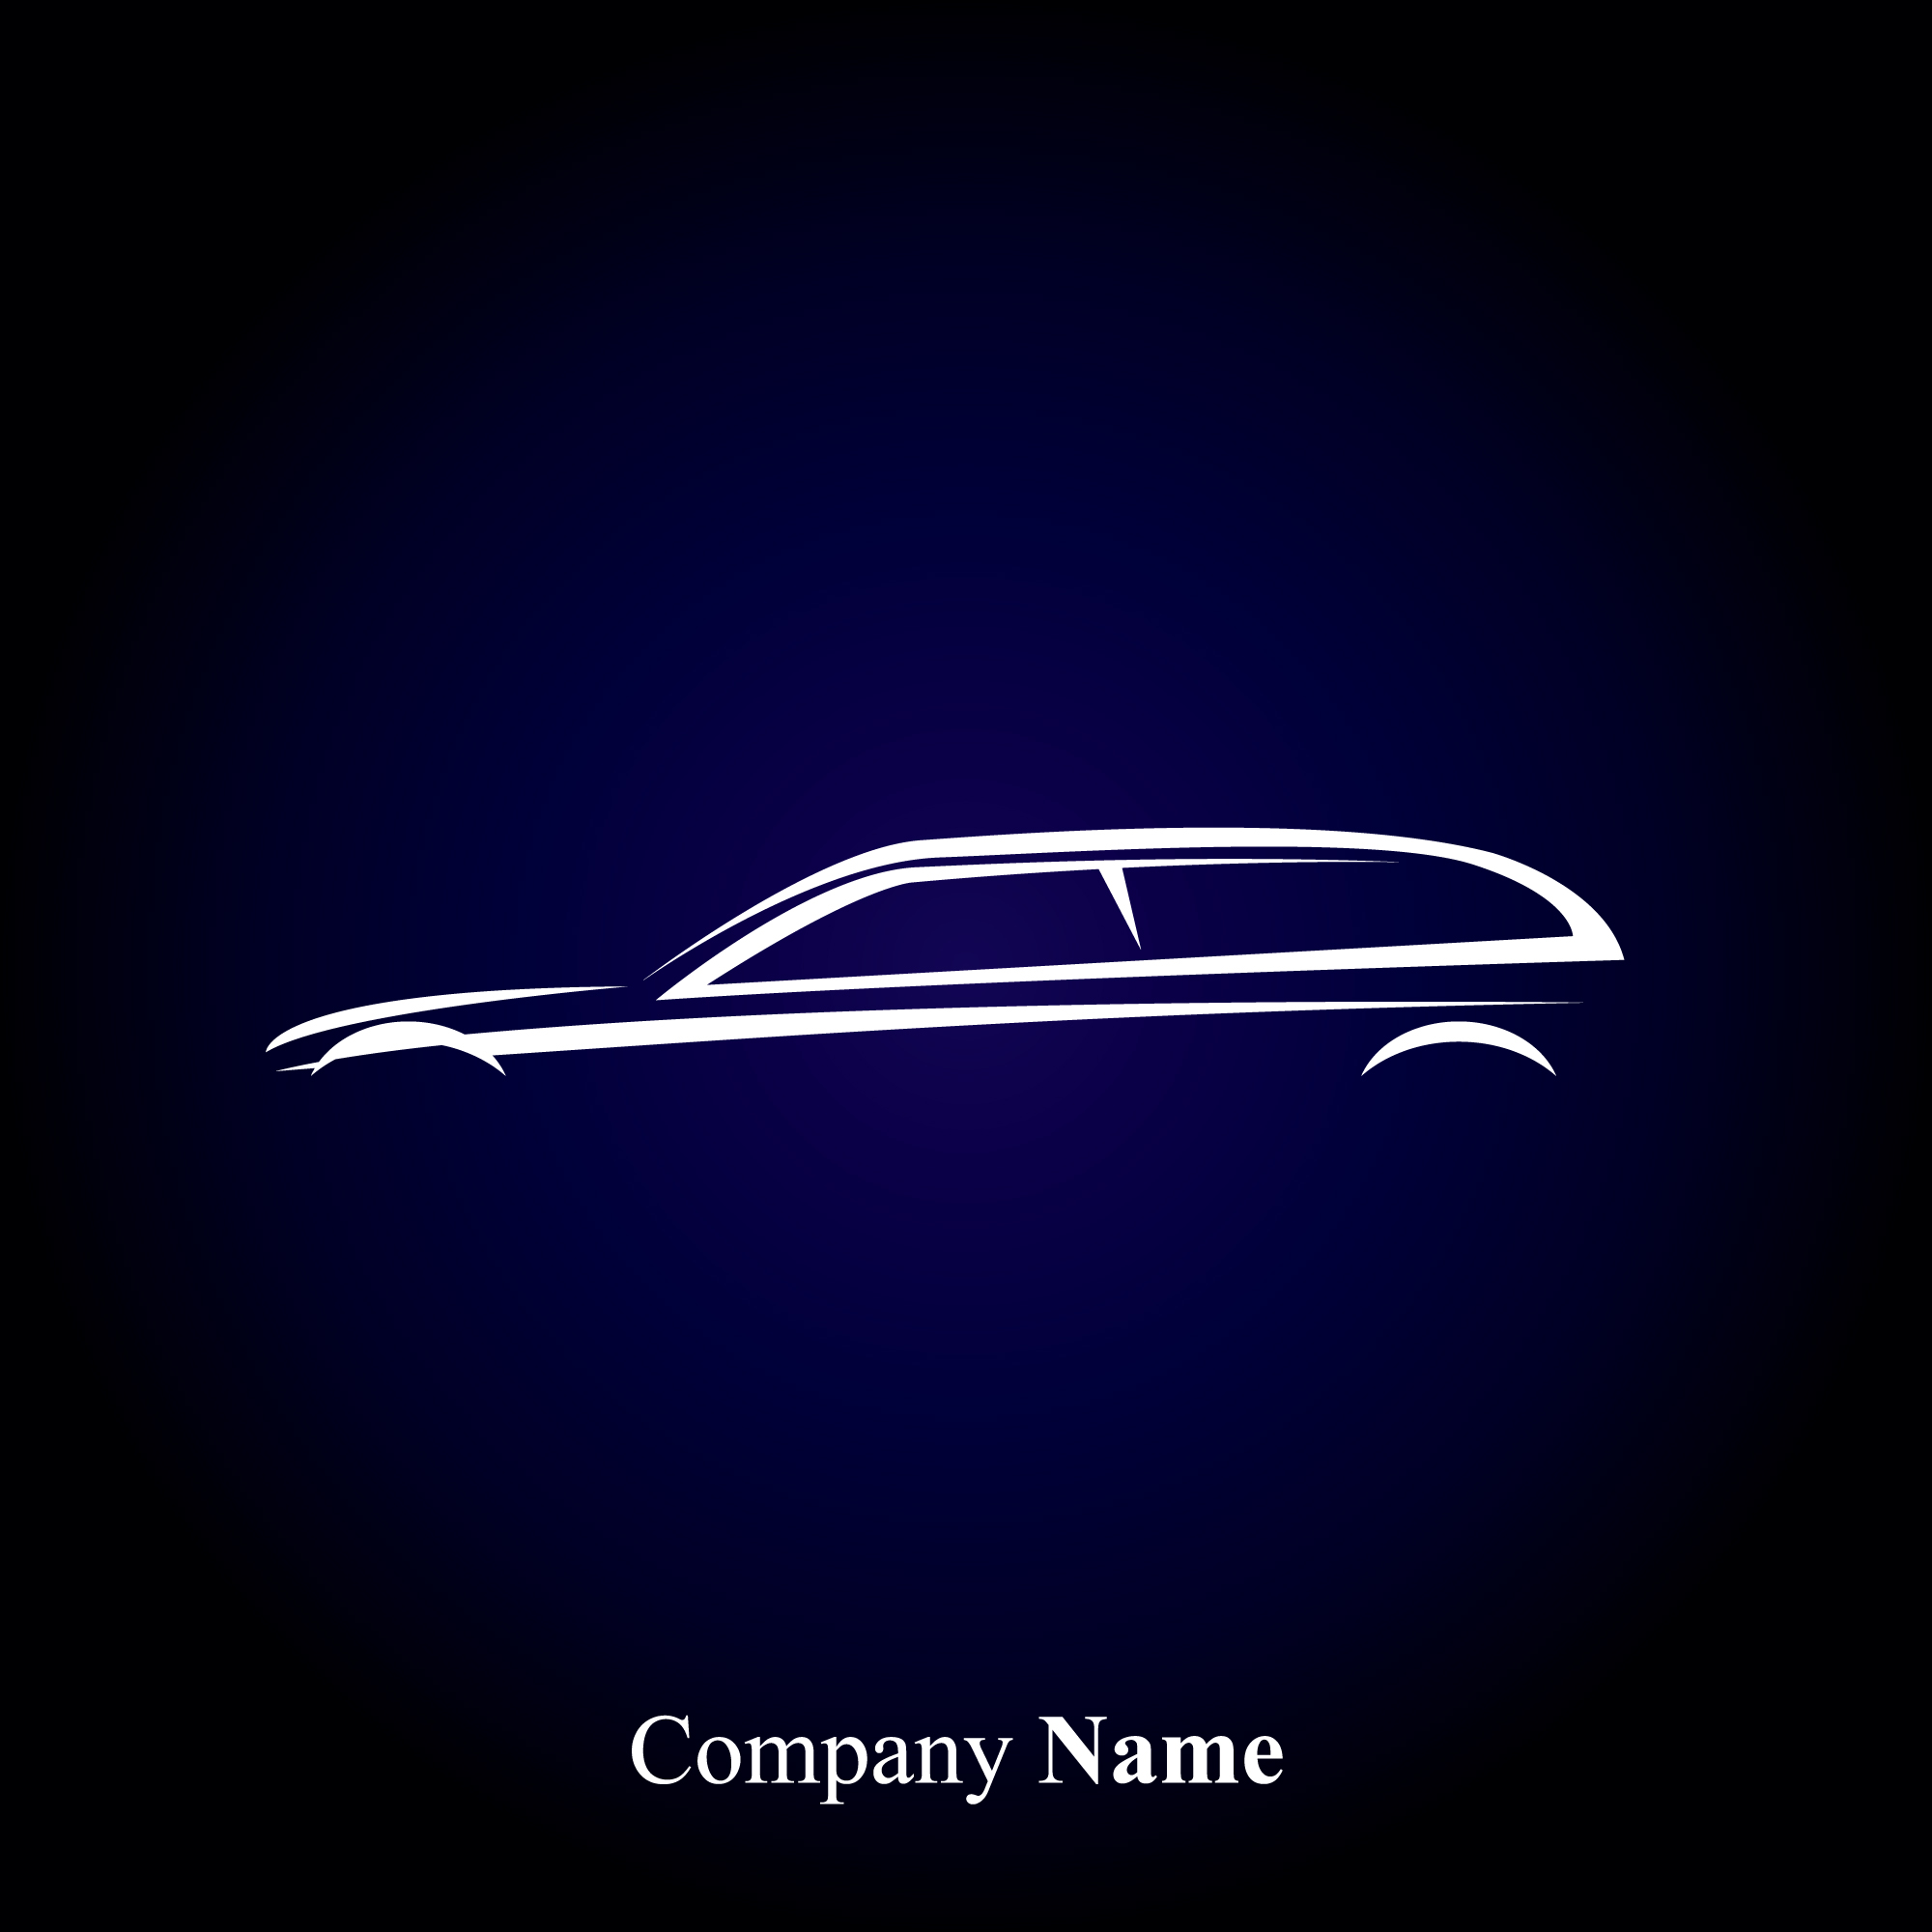 All Cars Logo With Name: Creative Car Logos Design Vector 05 Free Download